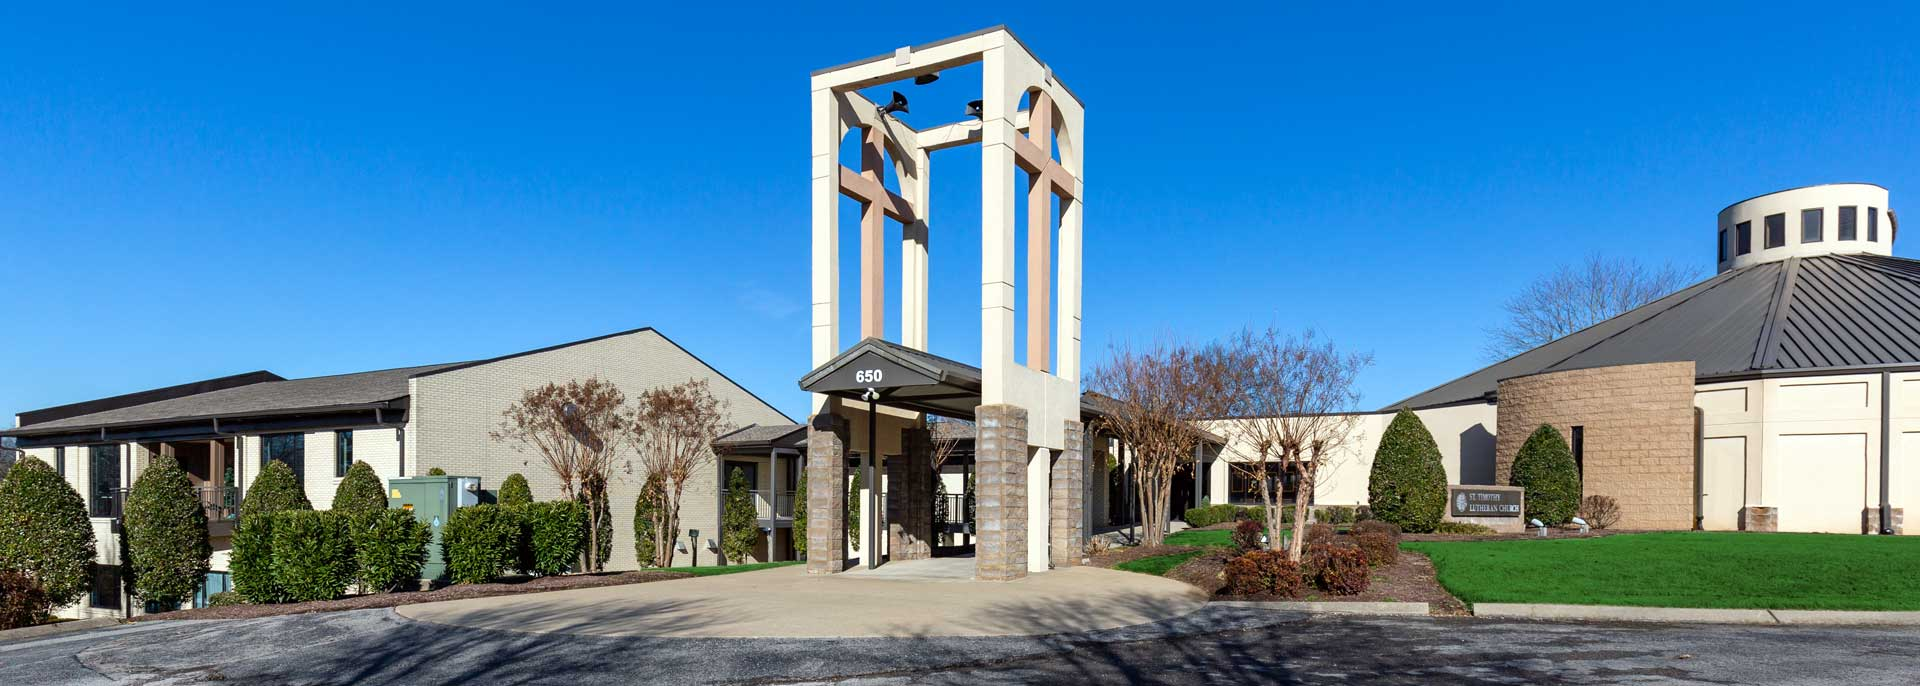 st timothy lutheran church hendersonville tennessee